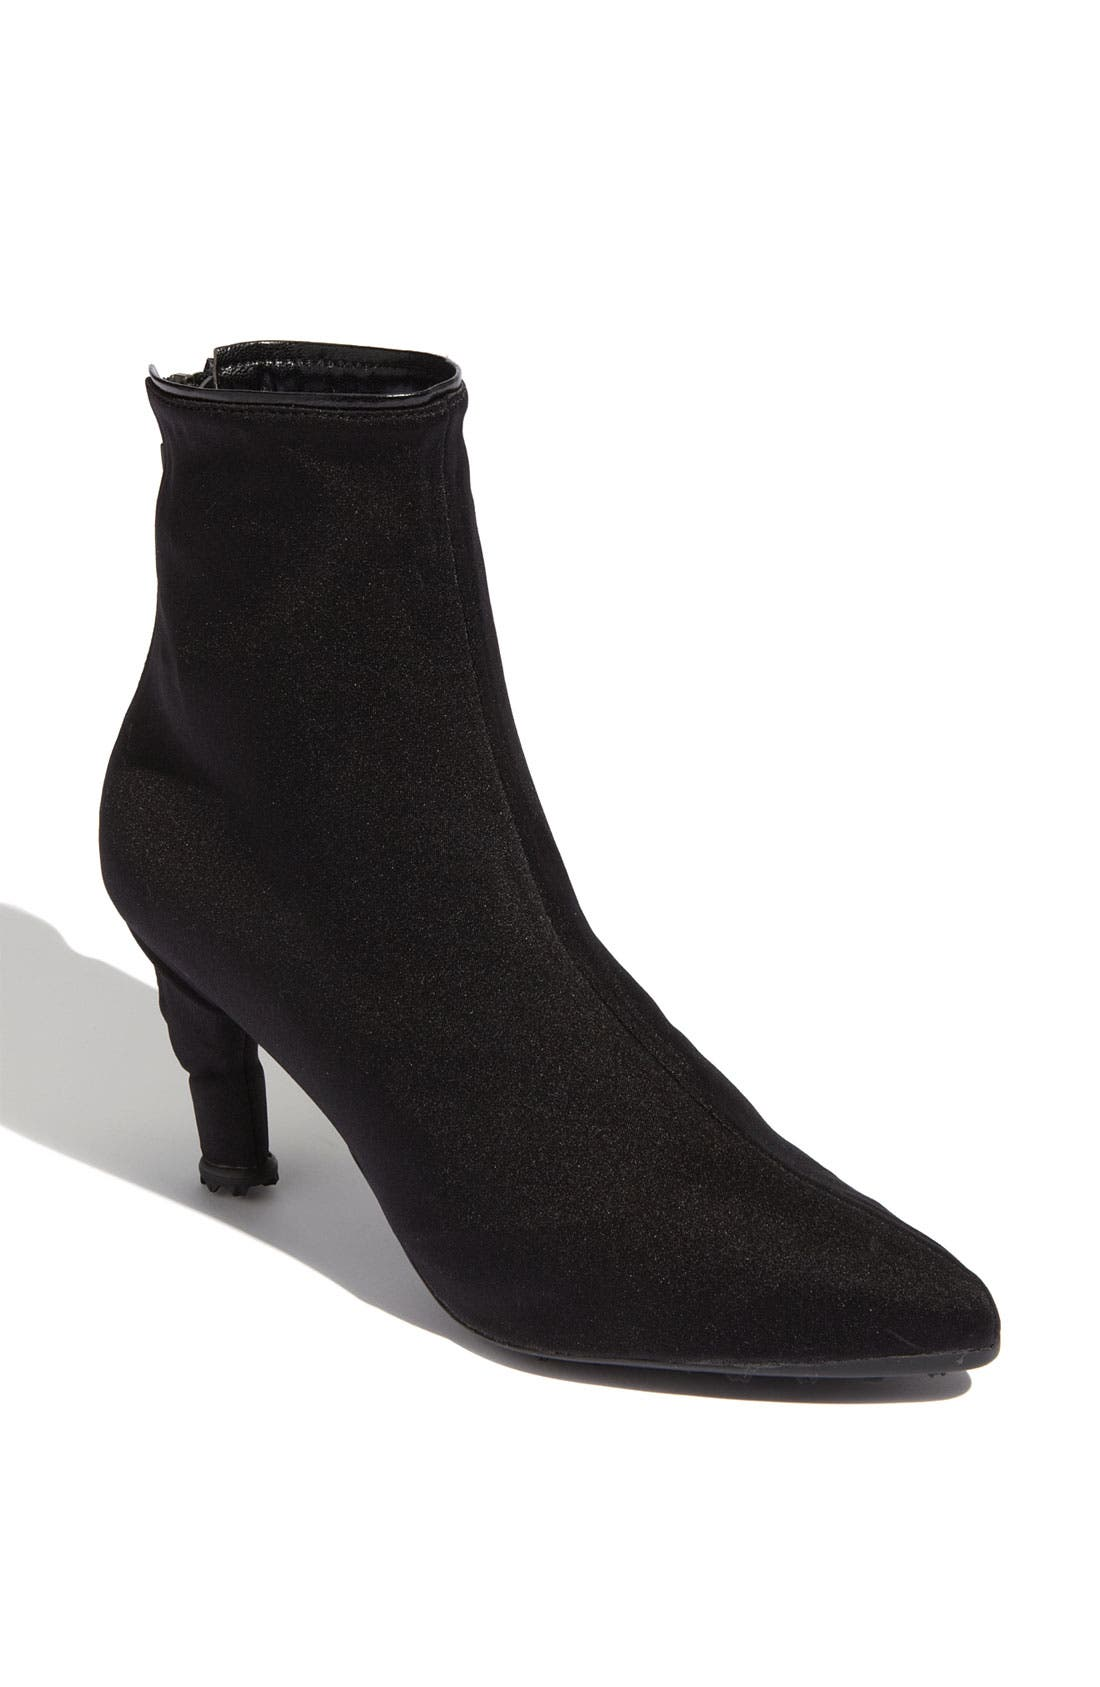 Alternate Image 1 Selected - Grace Carter 'High Pointy' Shoe Cover